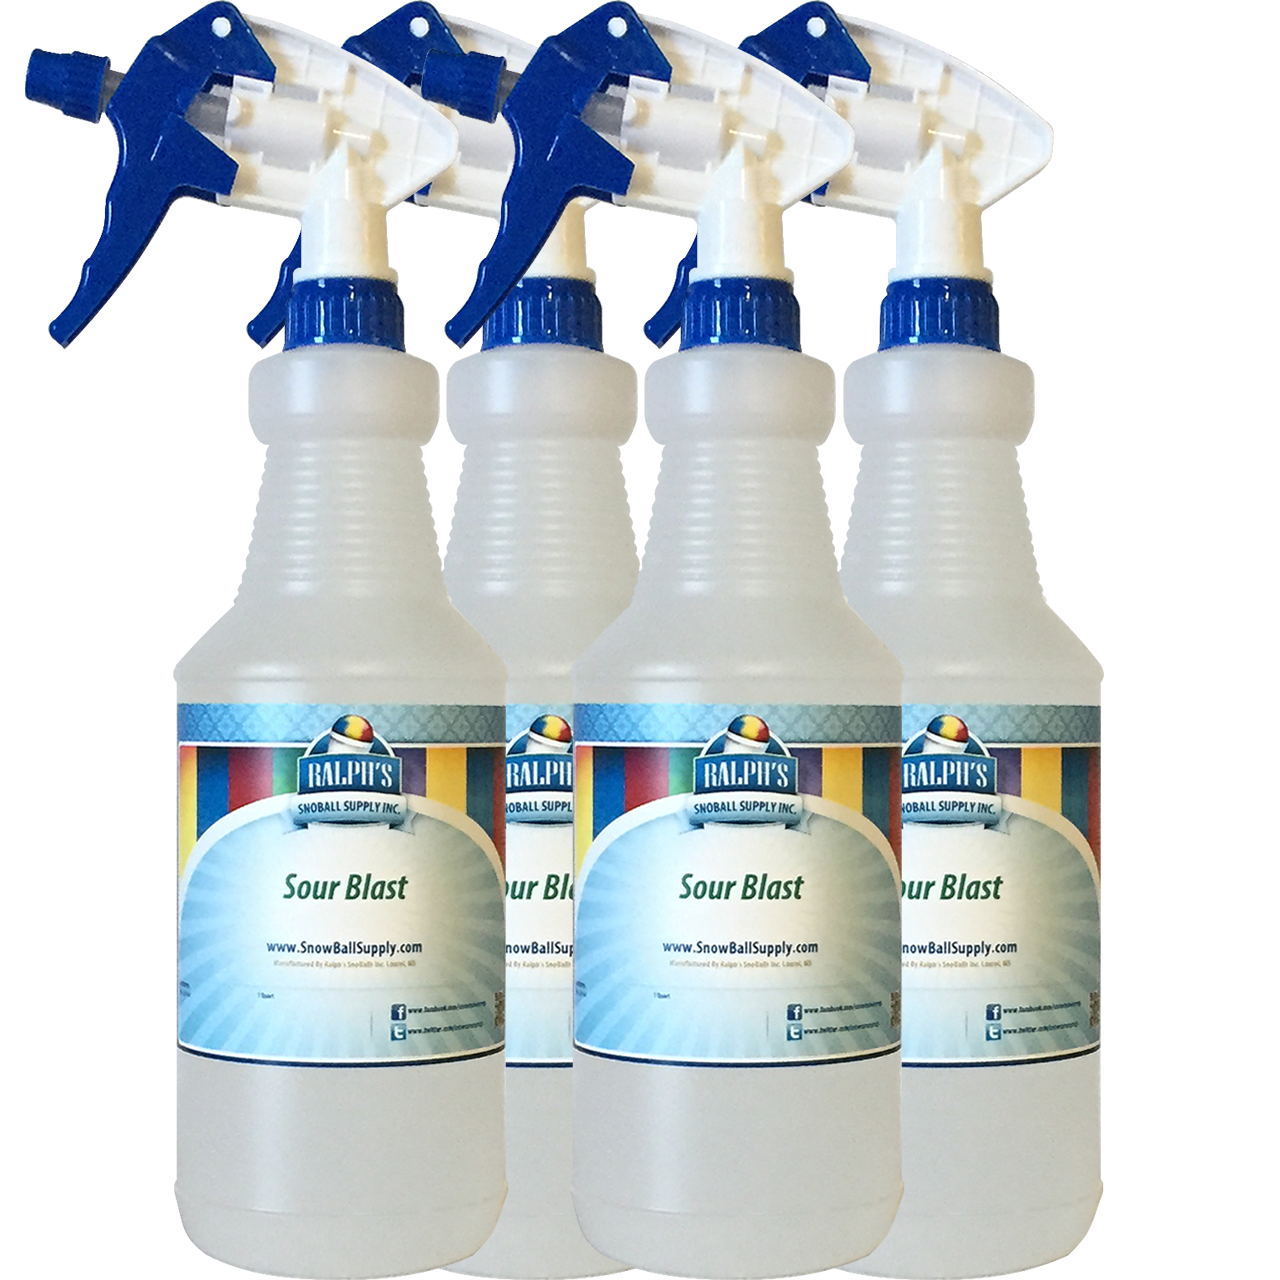 4 Quarts of Sour Blast Spray - Save $3.00